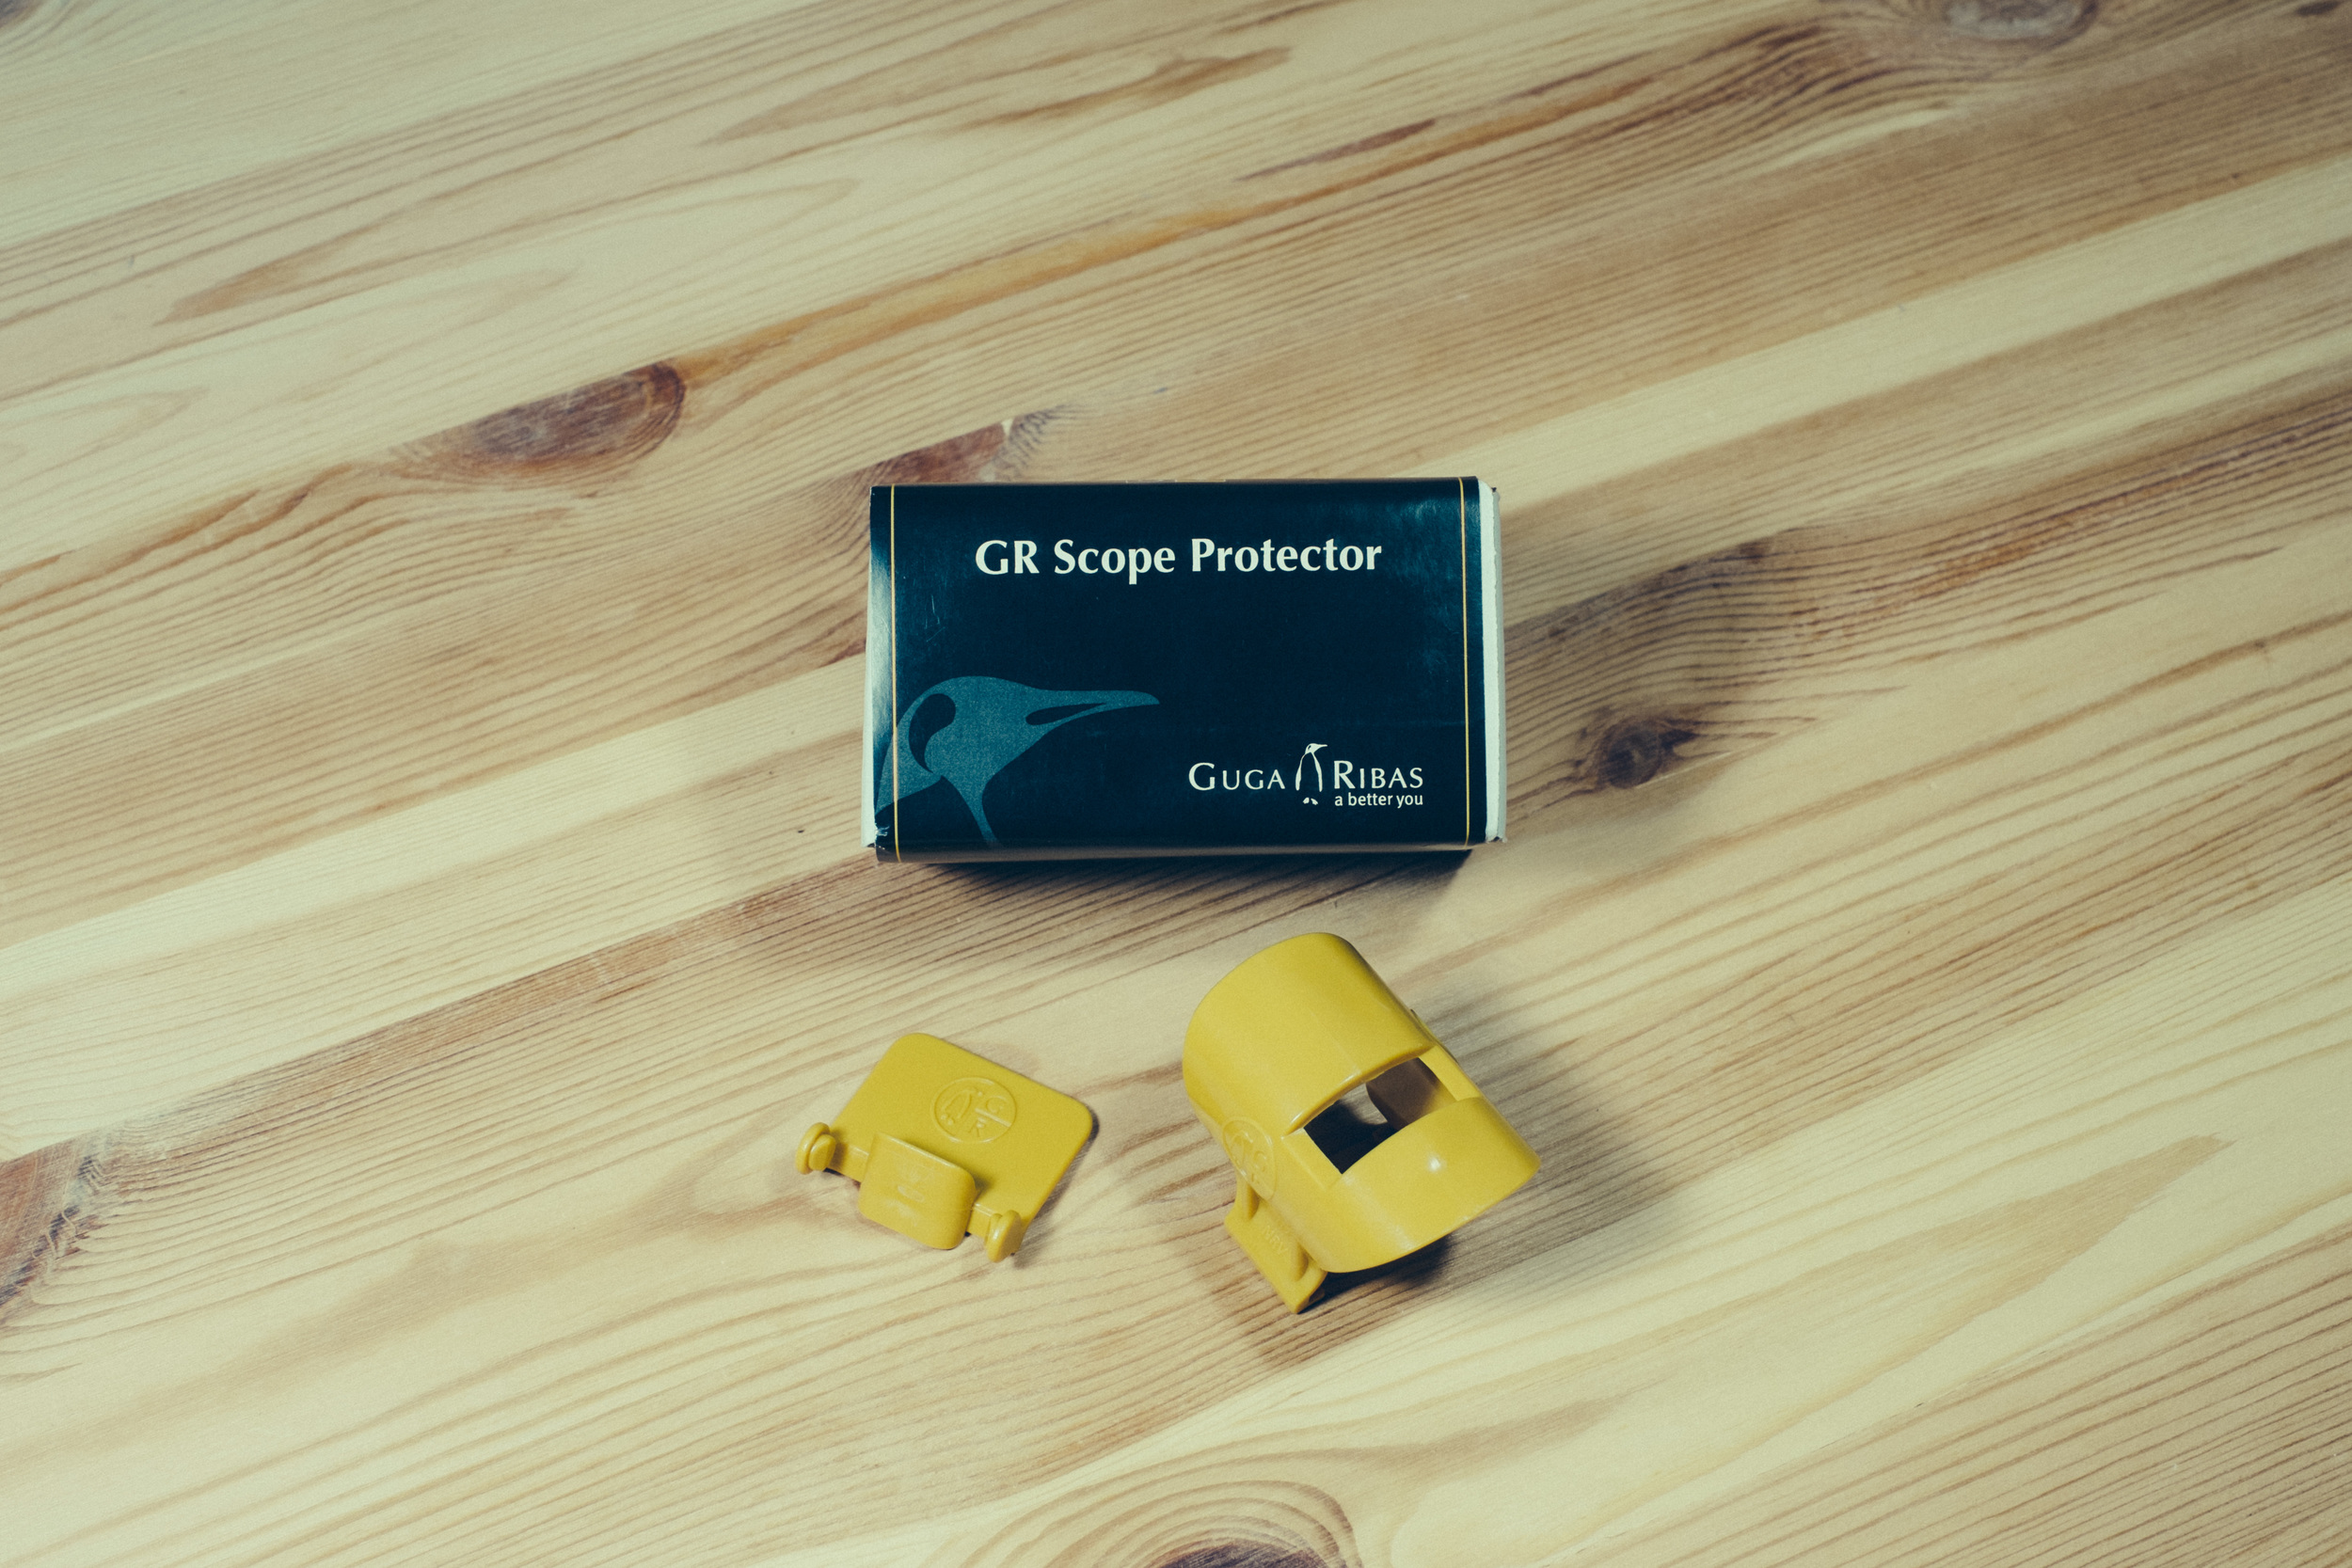 Guga Ribas - Scope Protector